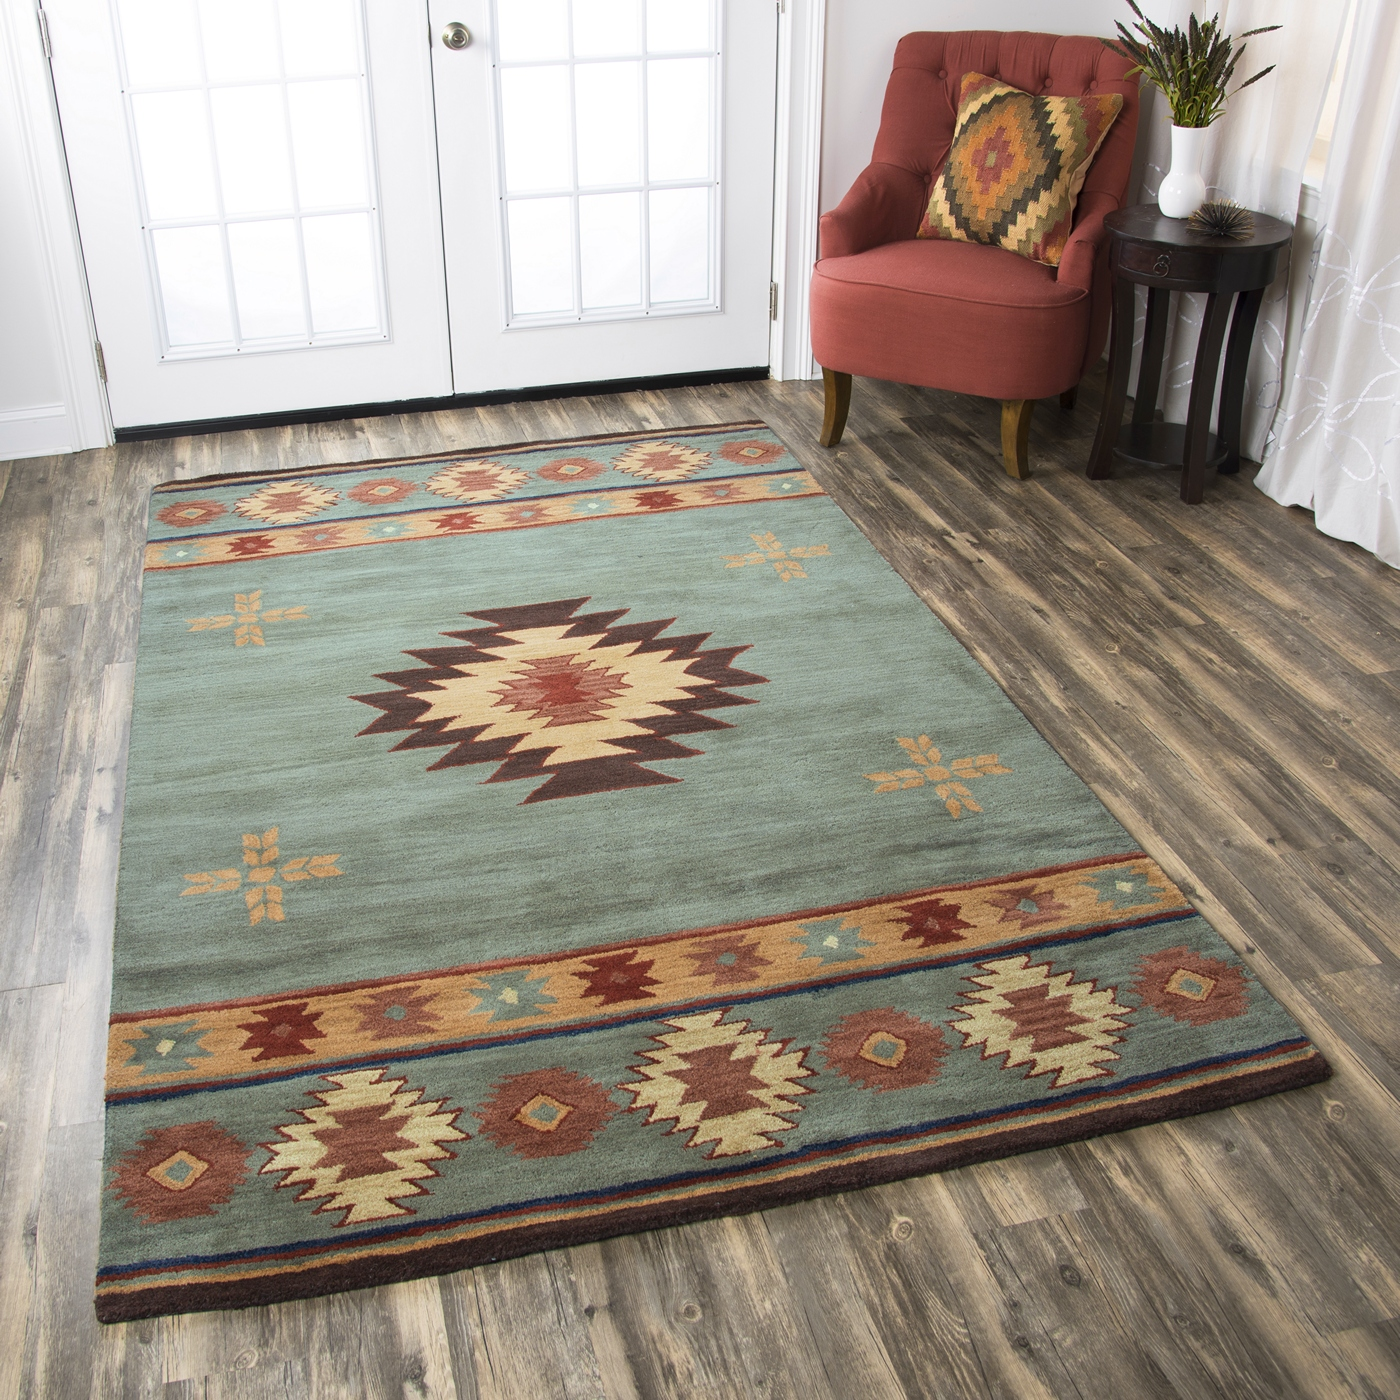 Southwestern Large Area Rug: Southwest Indian Pattern Wool Area Rug In Gray Blue Rust